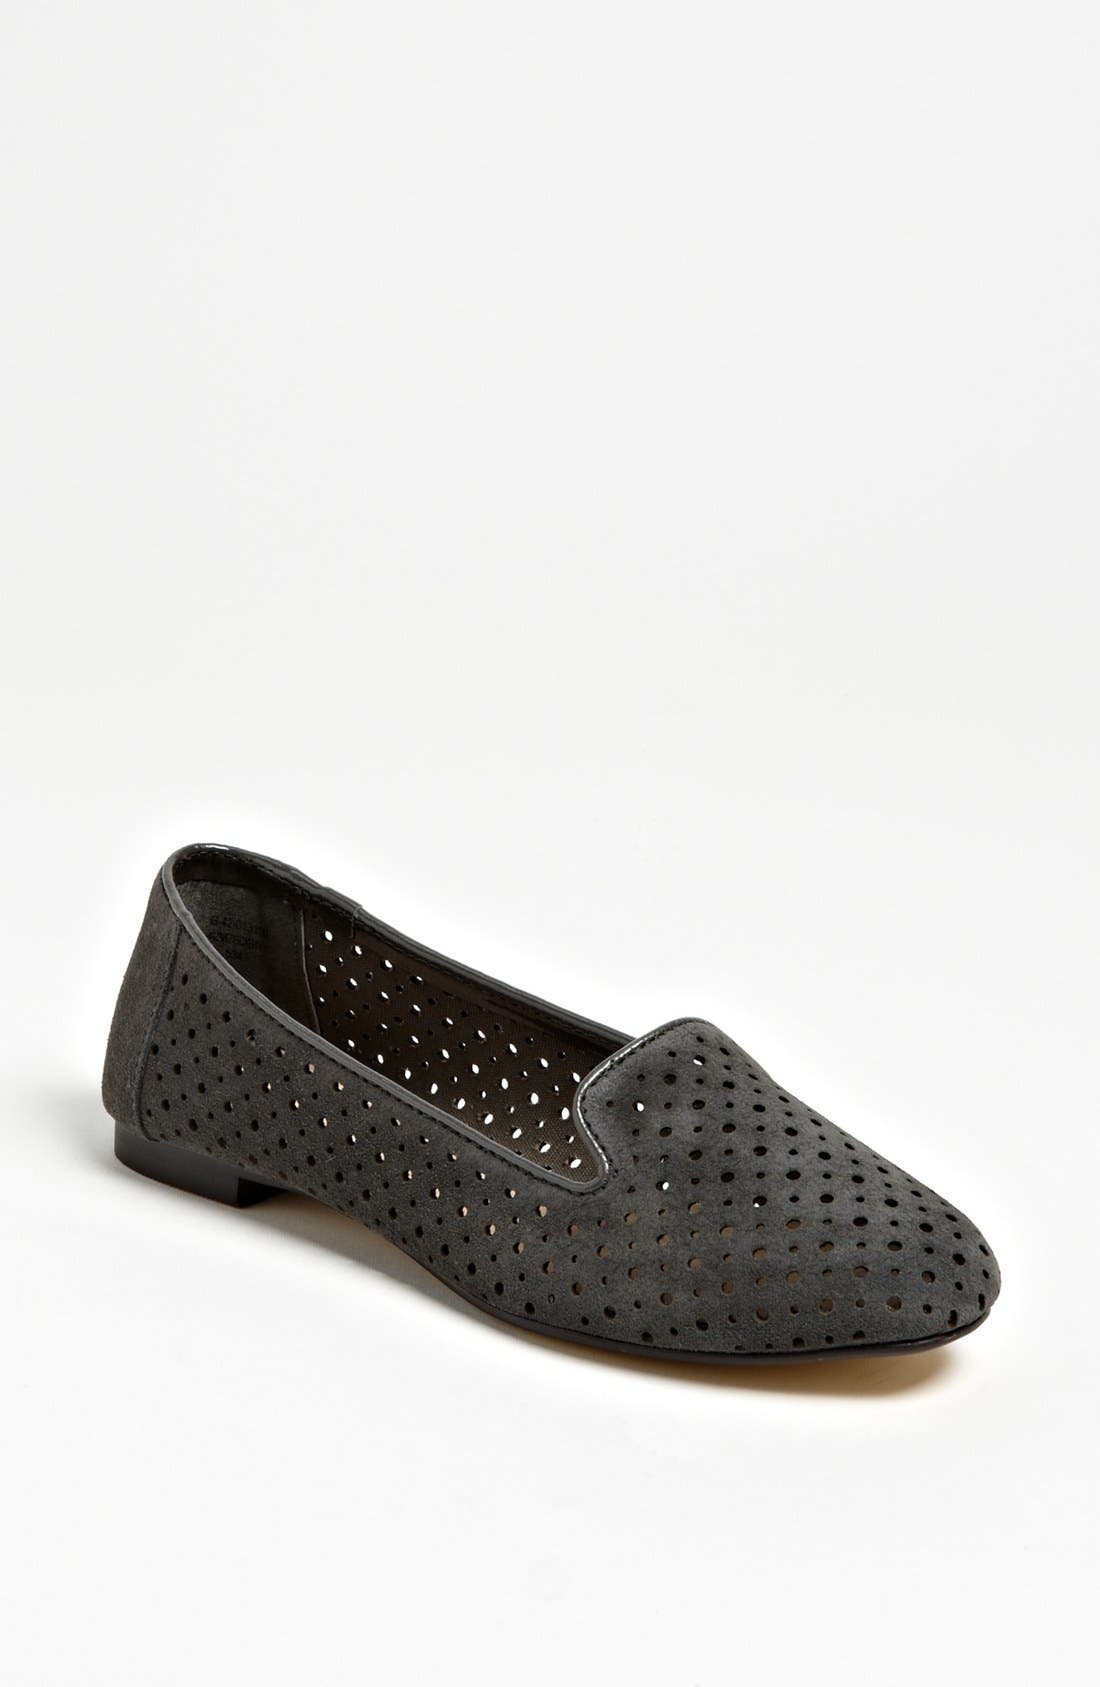 Main Image - Topshop 'Moon' Slipper